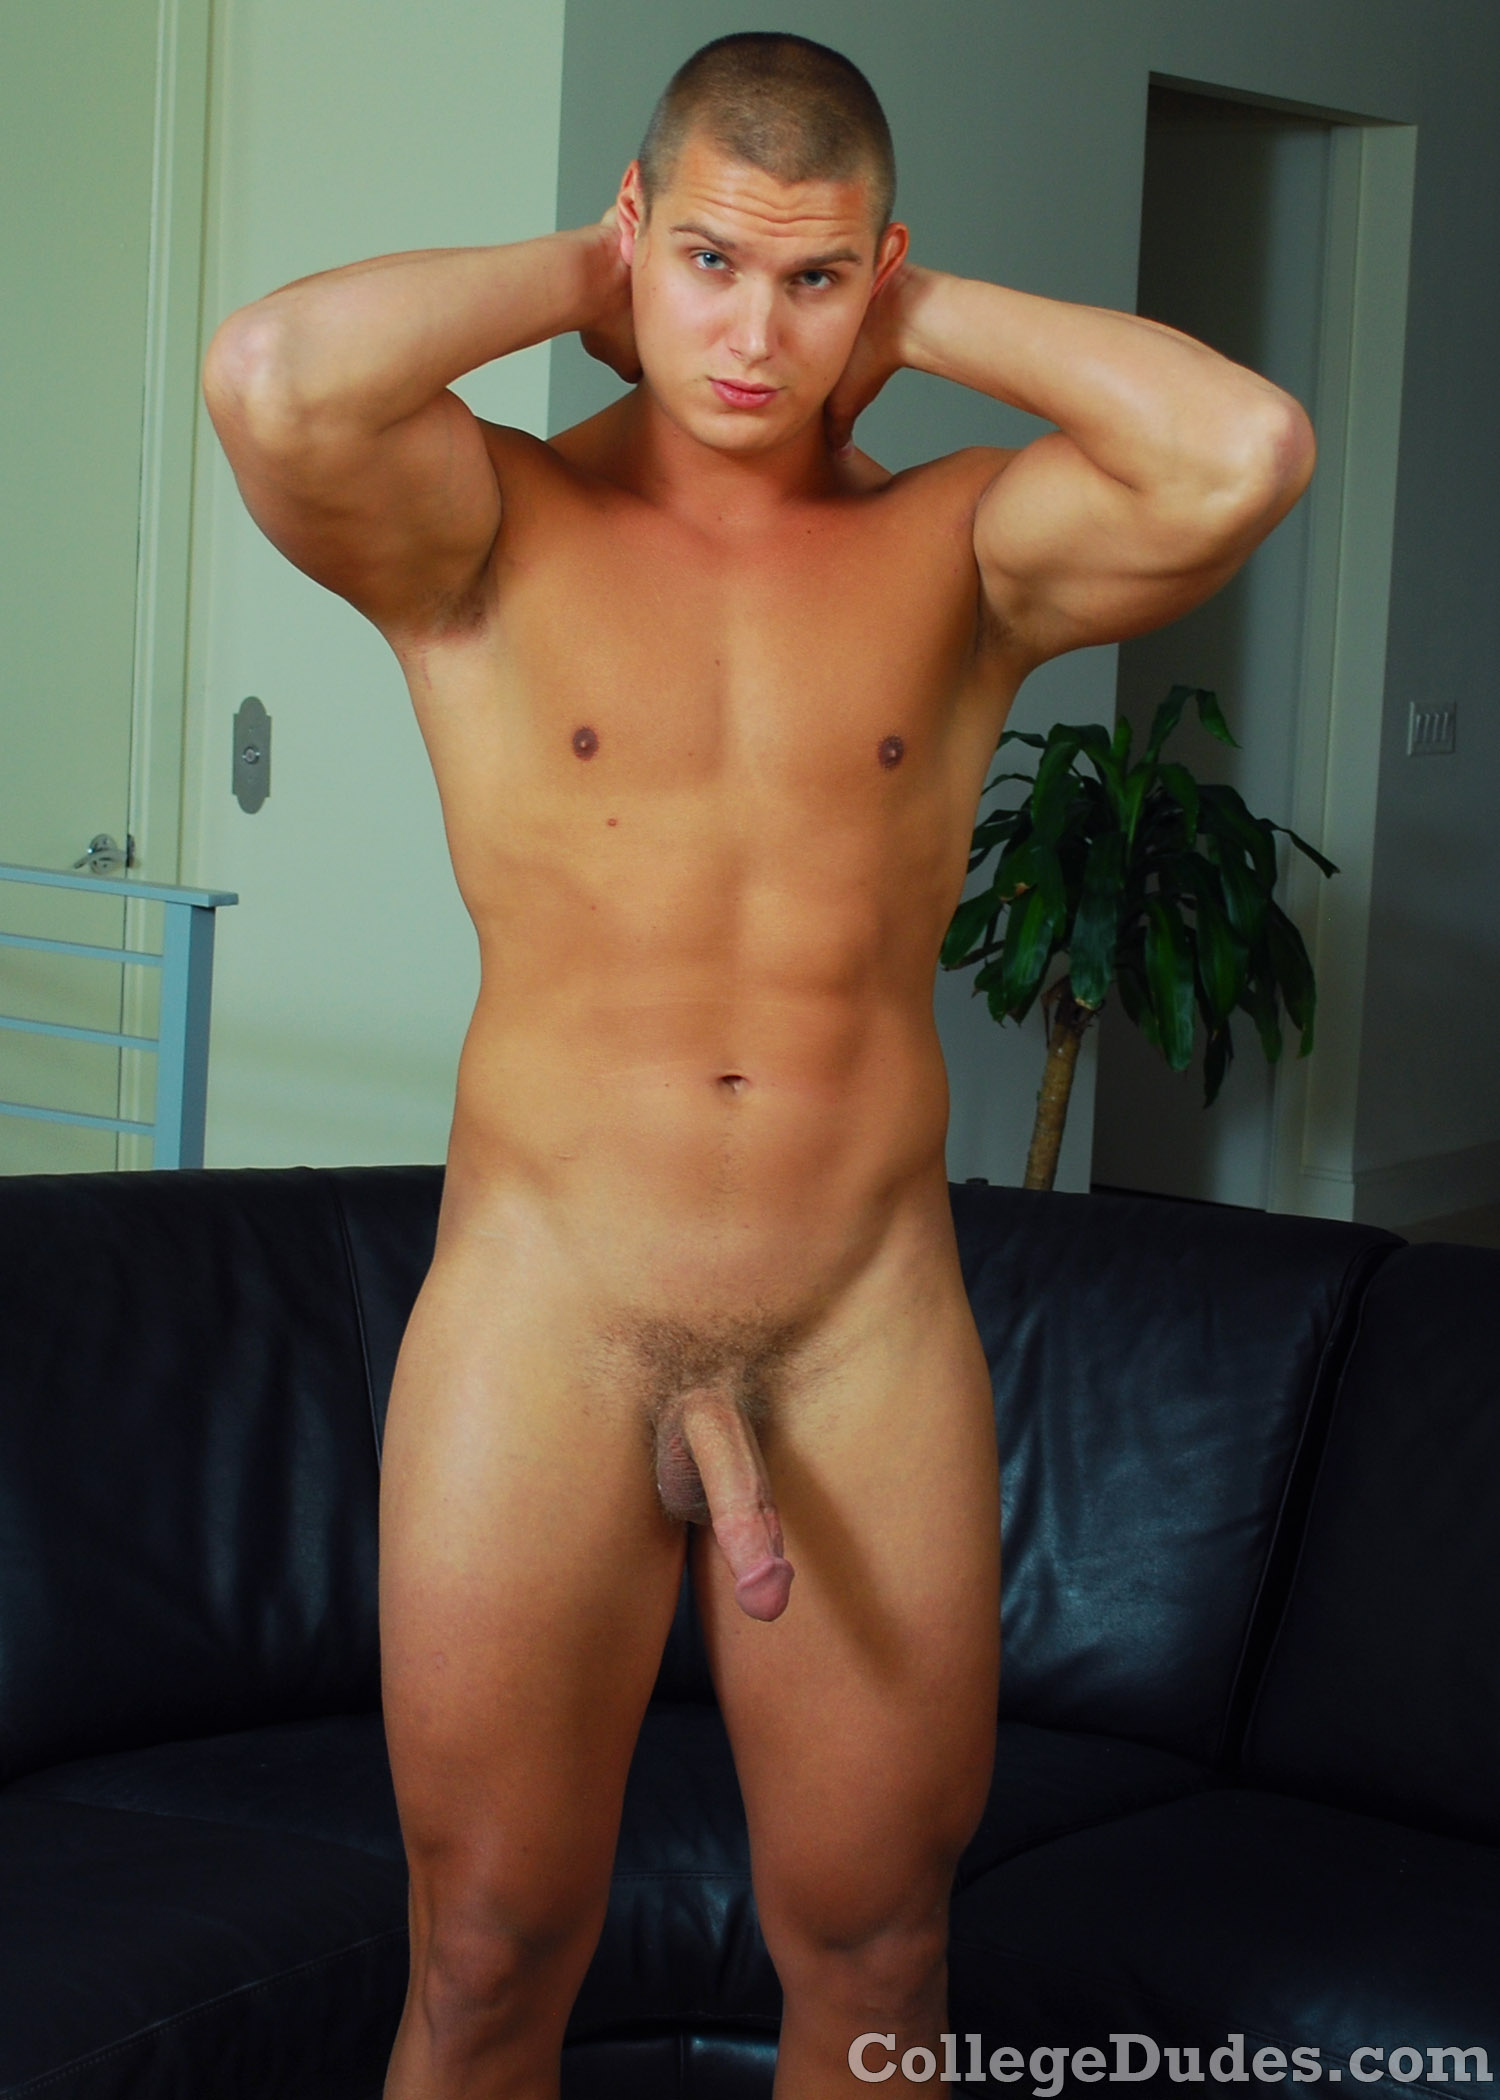 Mike-Young-Amateur-Straight-Collegedudes-Naked-Jacking-Off-09 Hot Straight Amatuer Muscle CollegeDude Shoots A Huge Load of Cum